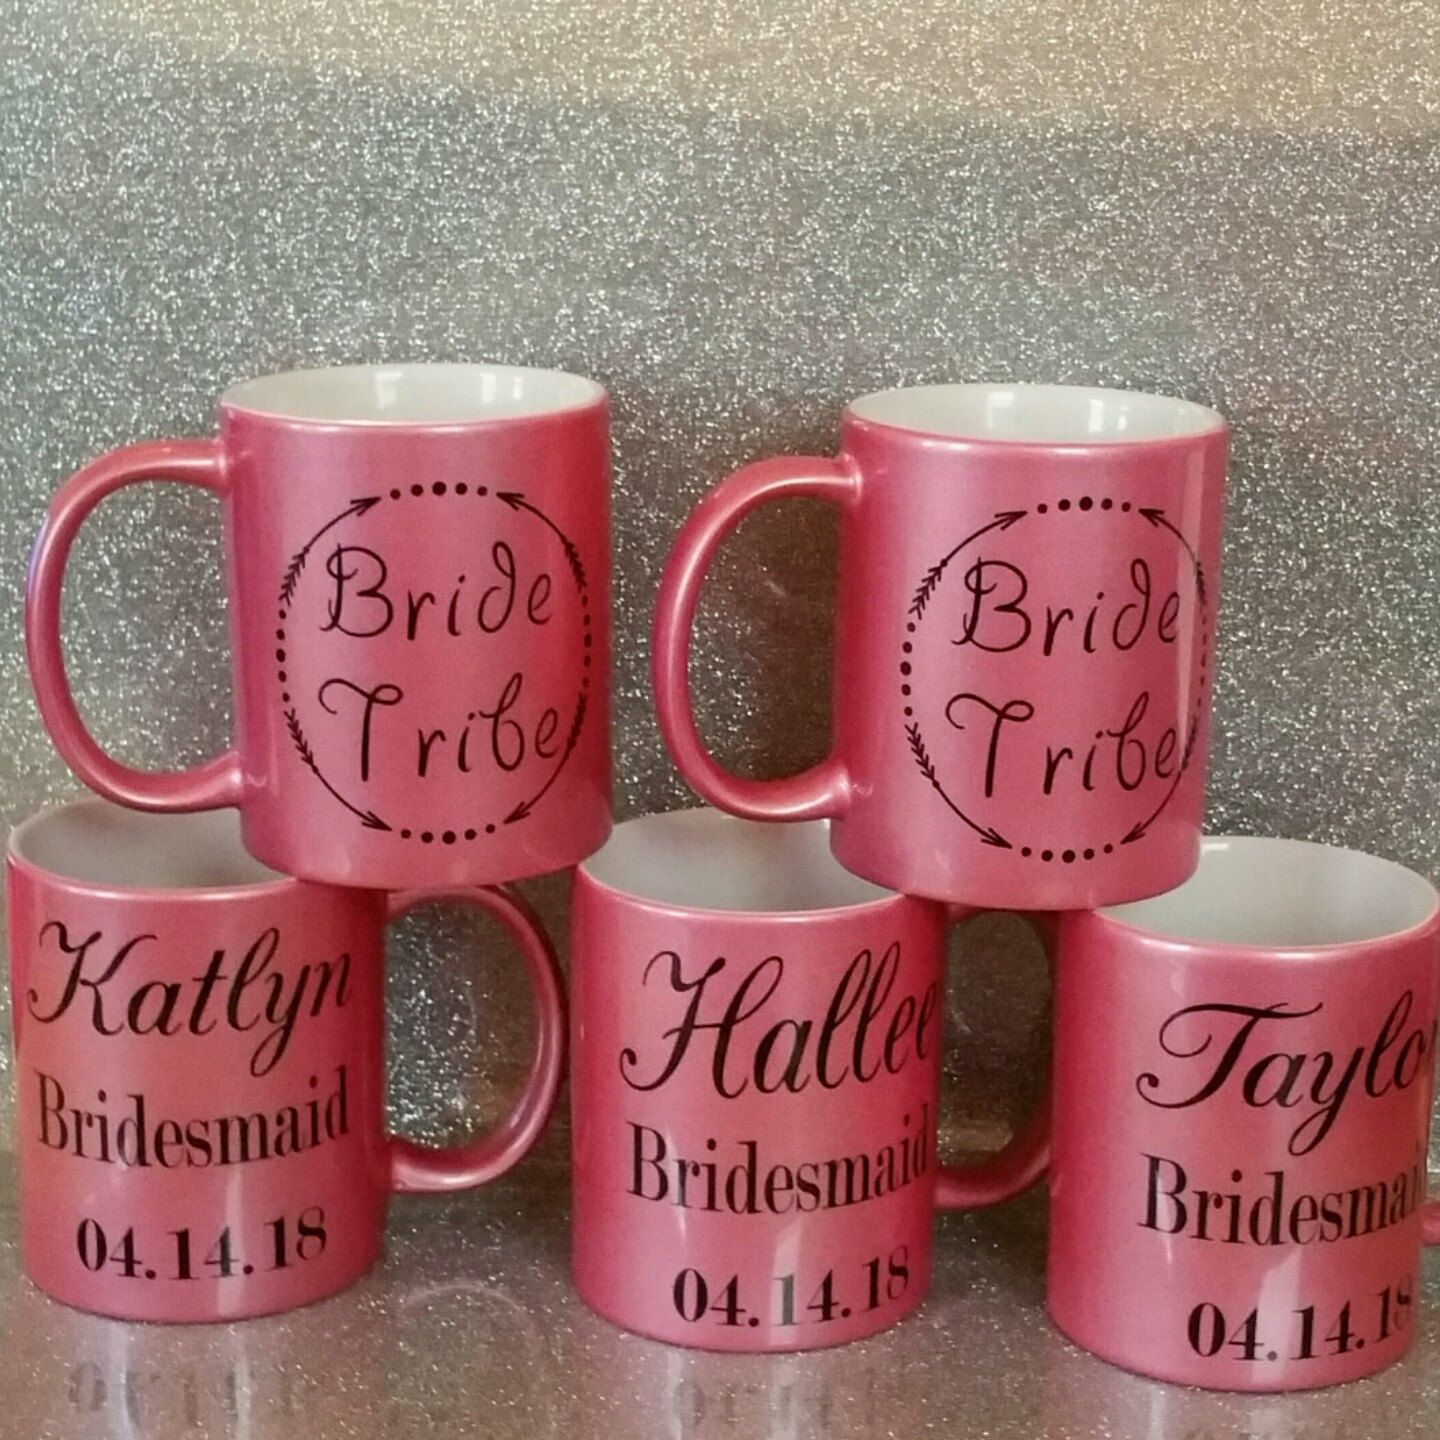 Tmcreativecreations Shared A New Photo On Etsy Cute Mugs Mugs Etsy